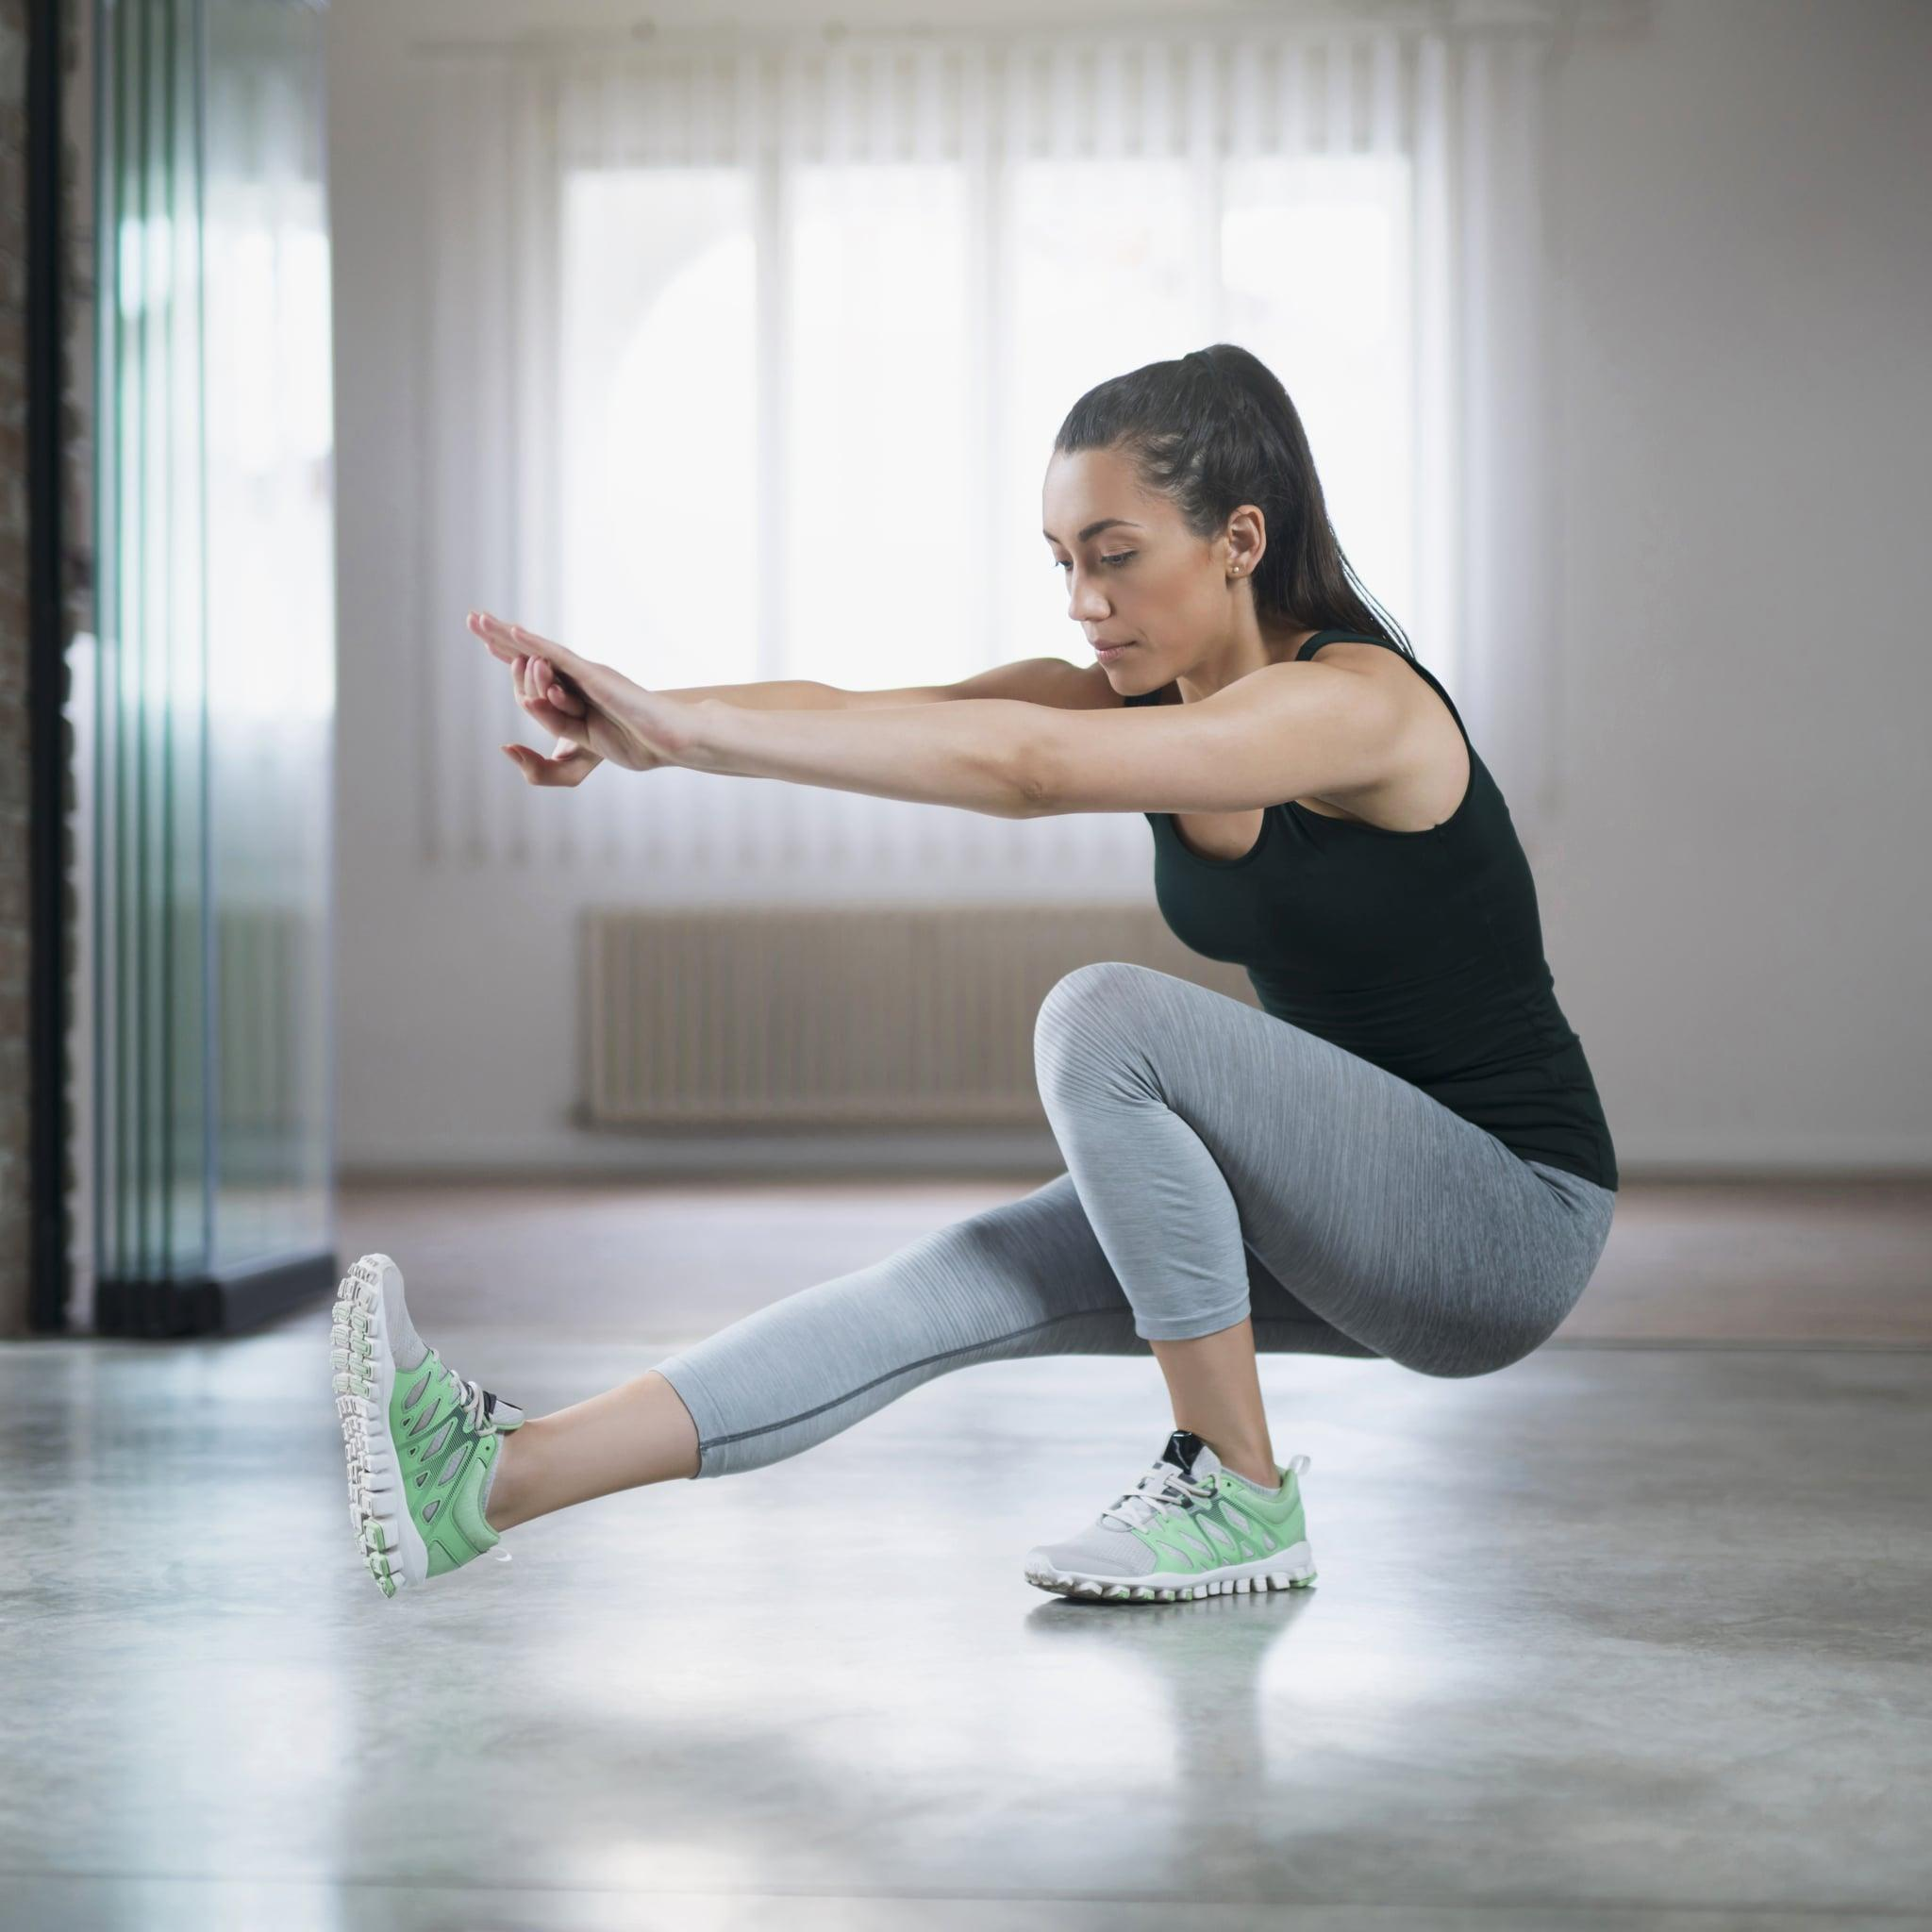 We Need Answers: Are Single-Leg or Regular Squats Better For Booty